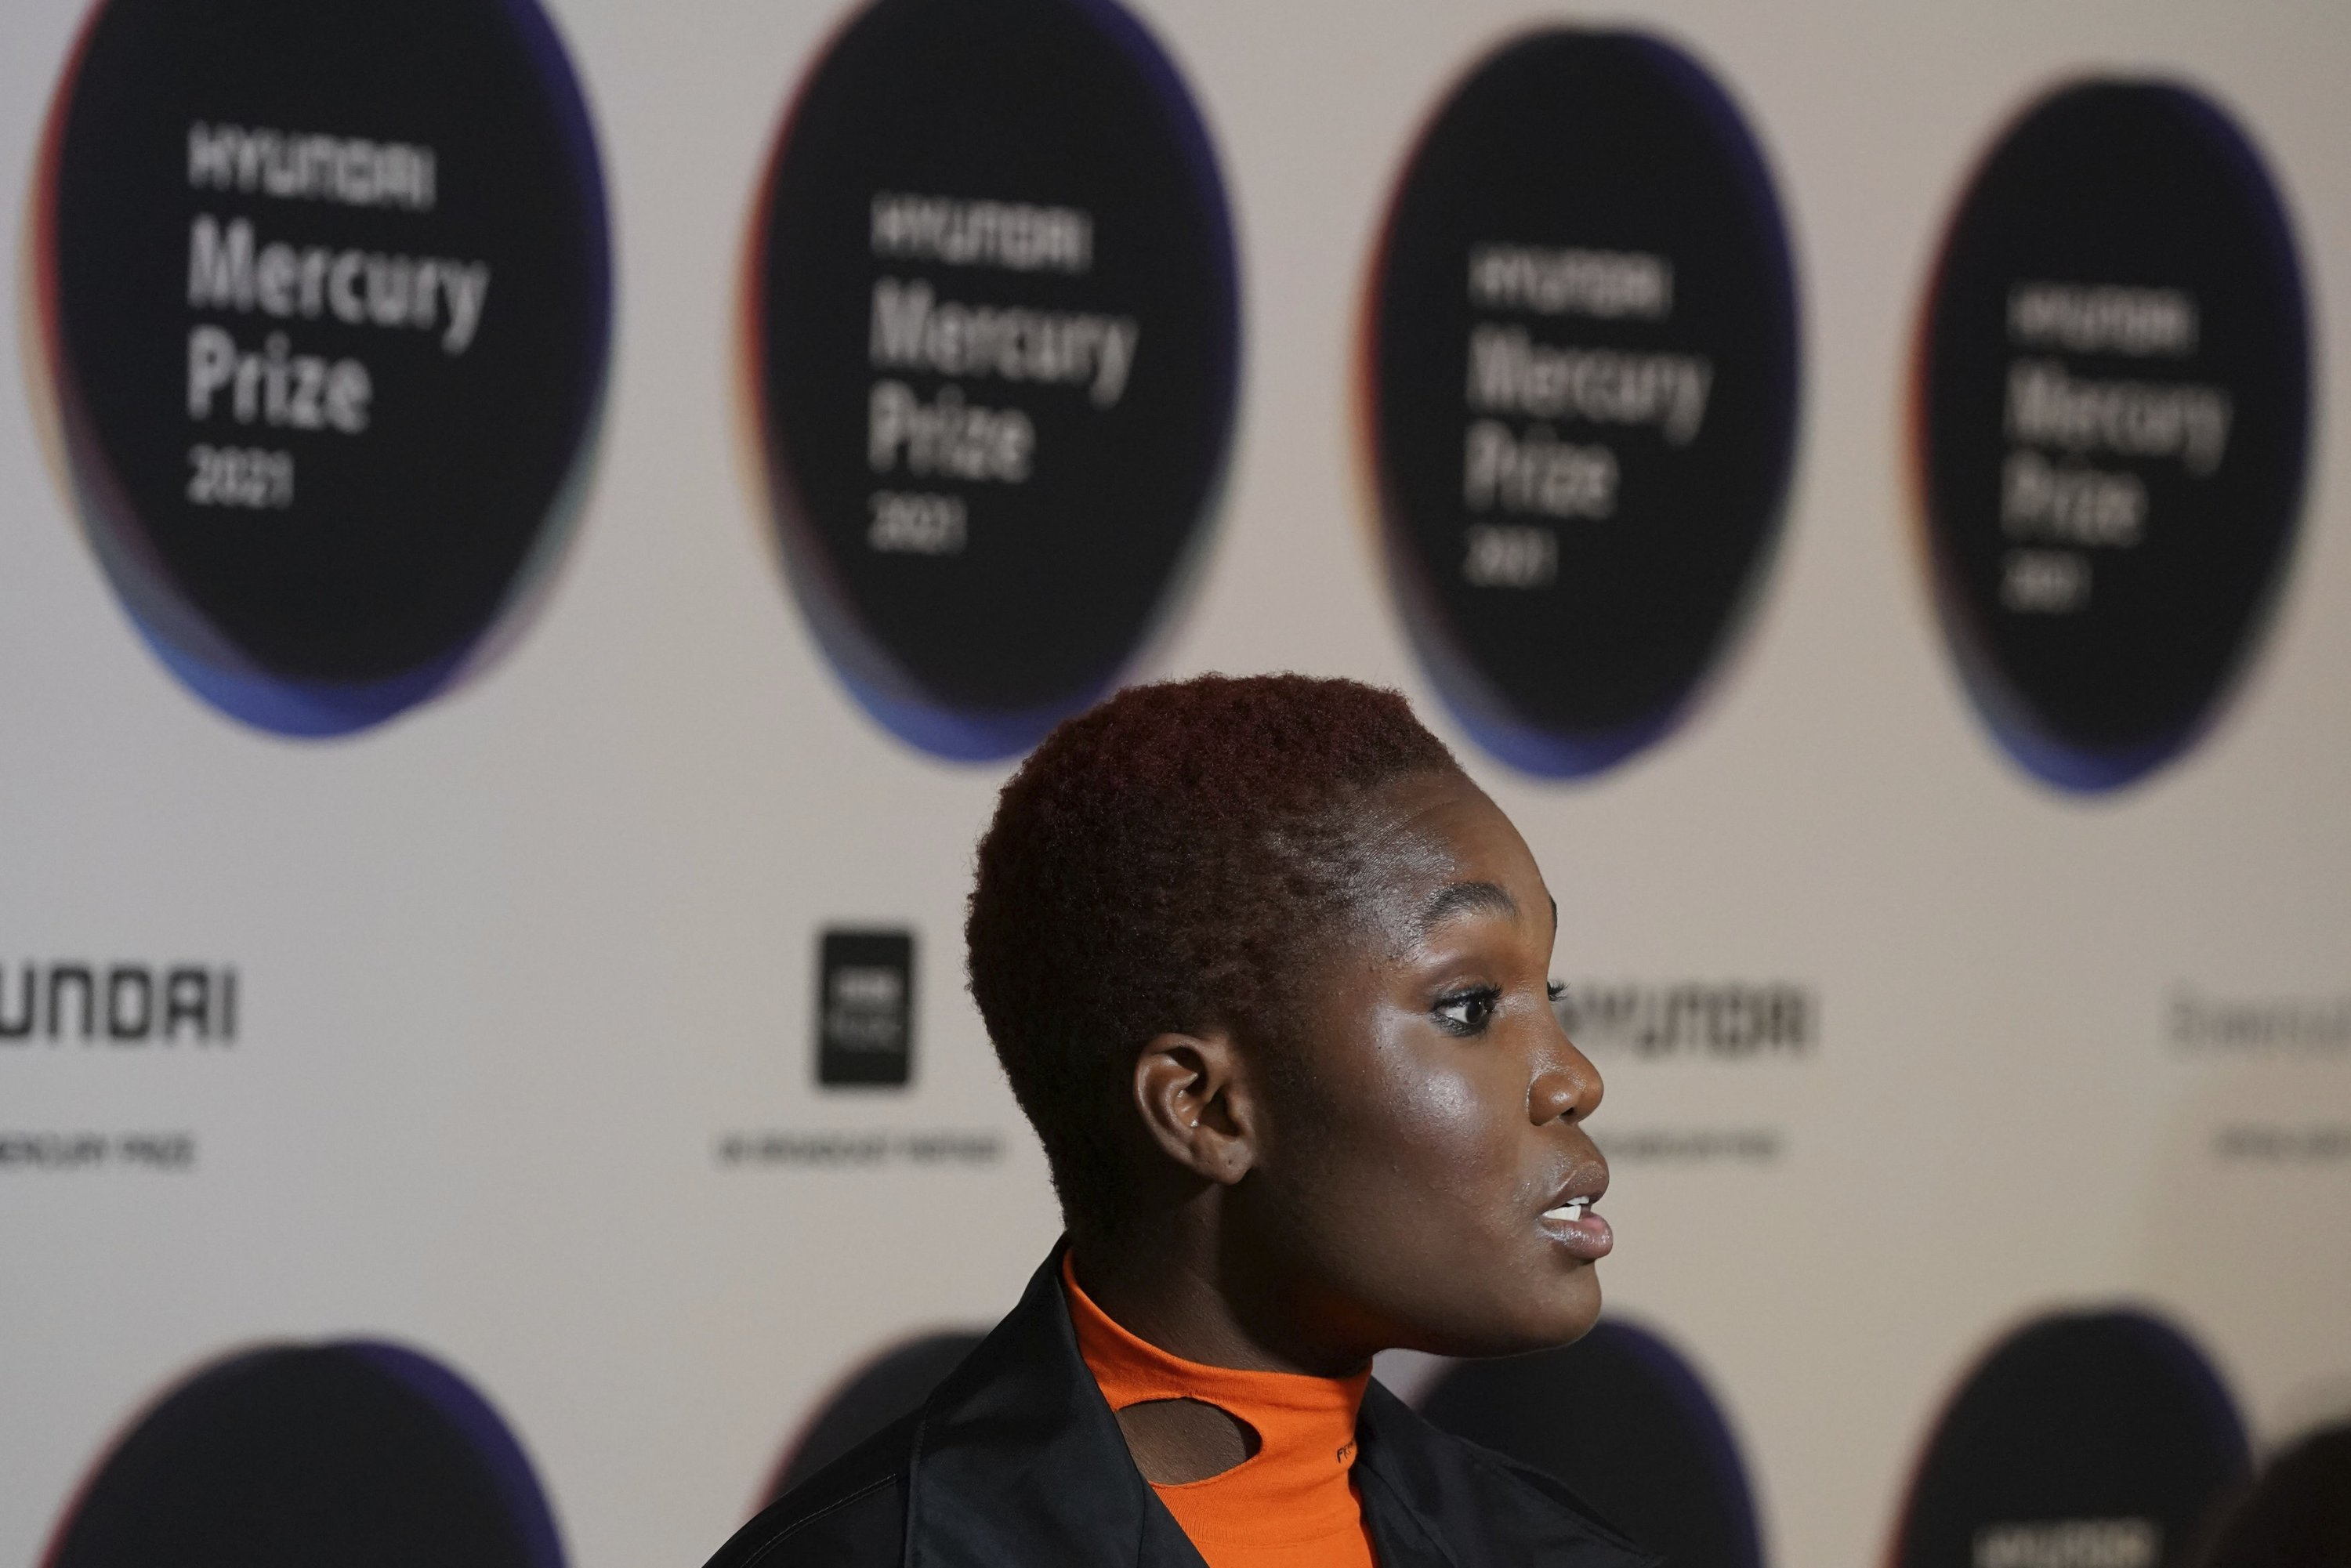 British artist Arlo Parks speaks, during the announcement of the shortlist of nominations for the Mercury Prize Albums of the Year, at the Langham Hotel in London, U.K., July 22, 2021. (AP Photo)